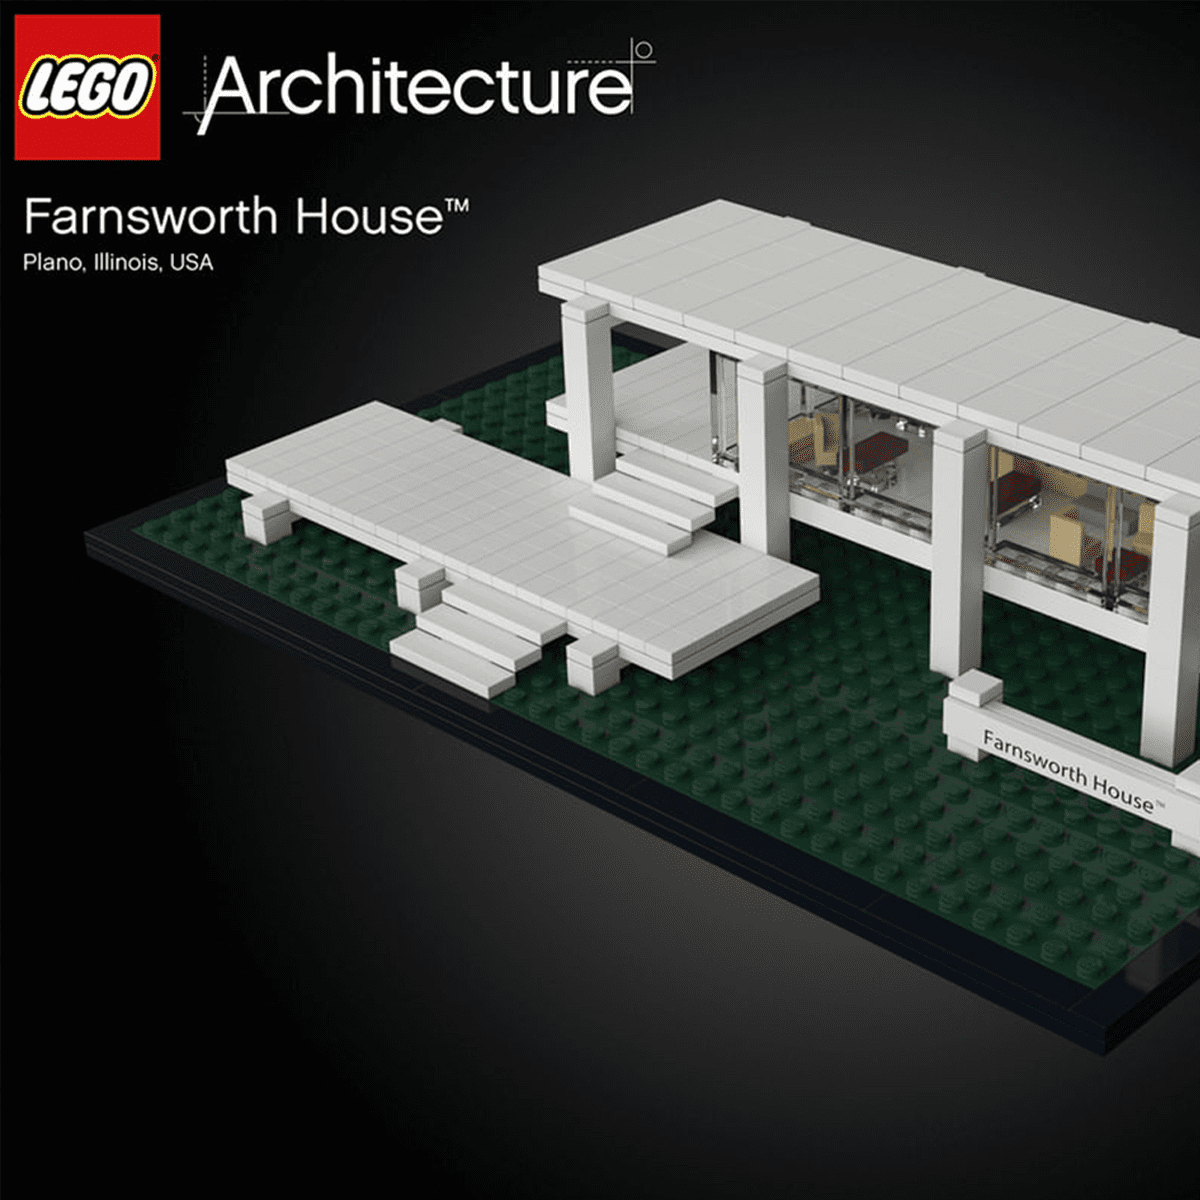 Celebrating Bauhaus Movement Shop Farnsworth House By Mies Van Der Rohe